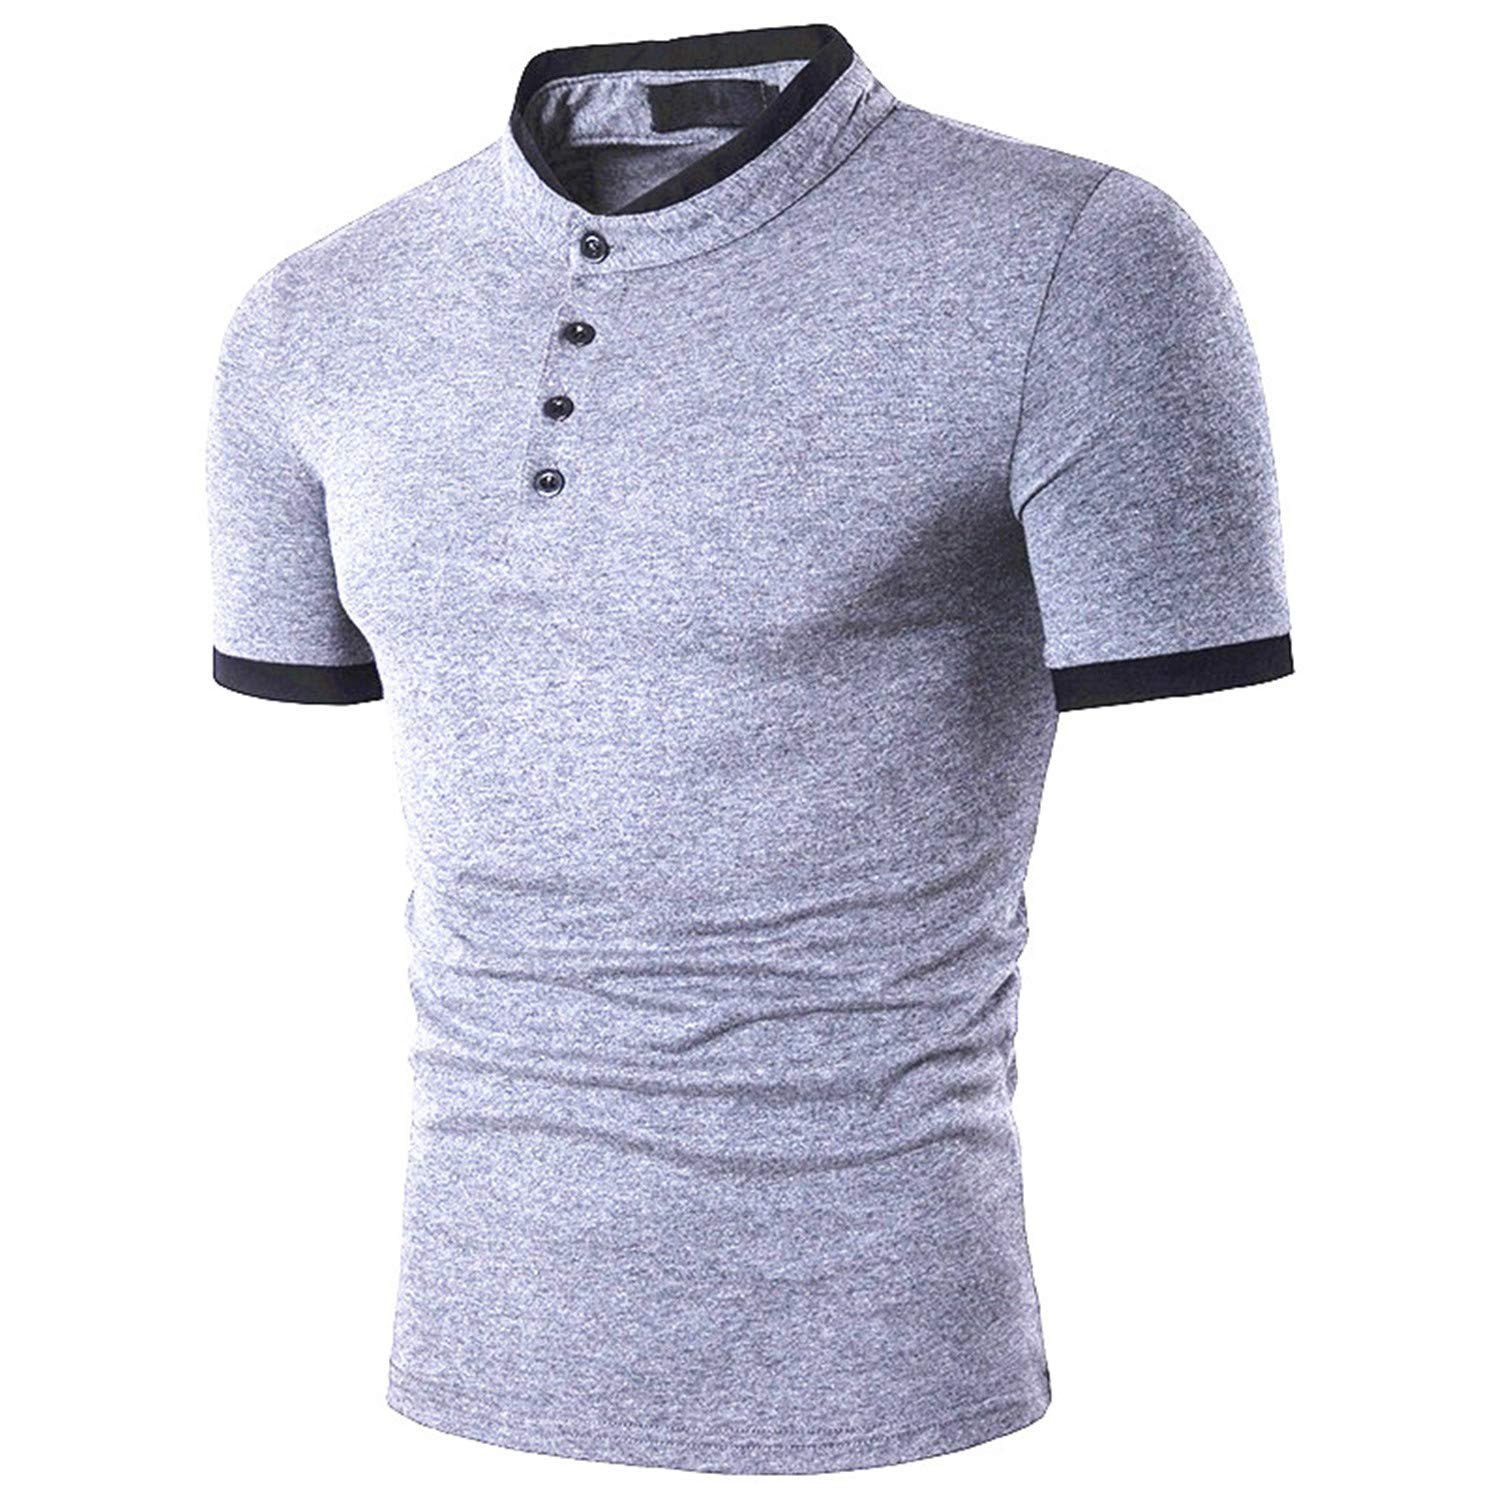 Casual Slim Fit Tops Polos Male Breathable Cotton Men Polo Shirt Short Sleeve Bussiness Polo Shirts Man Clothes